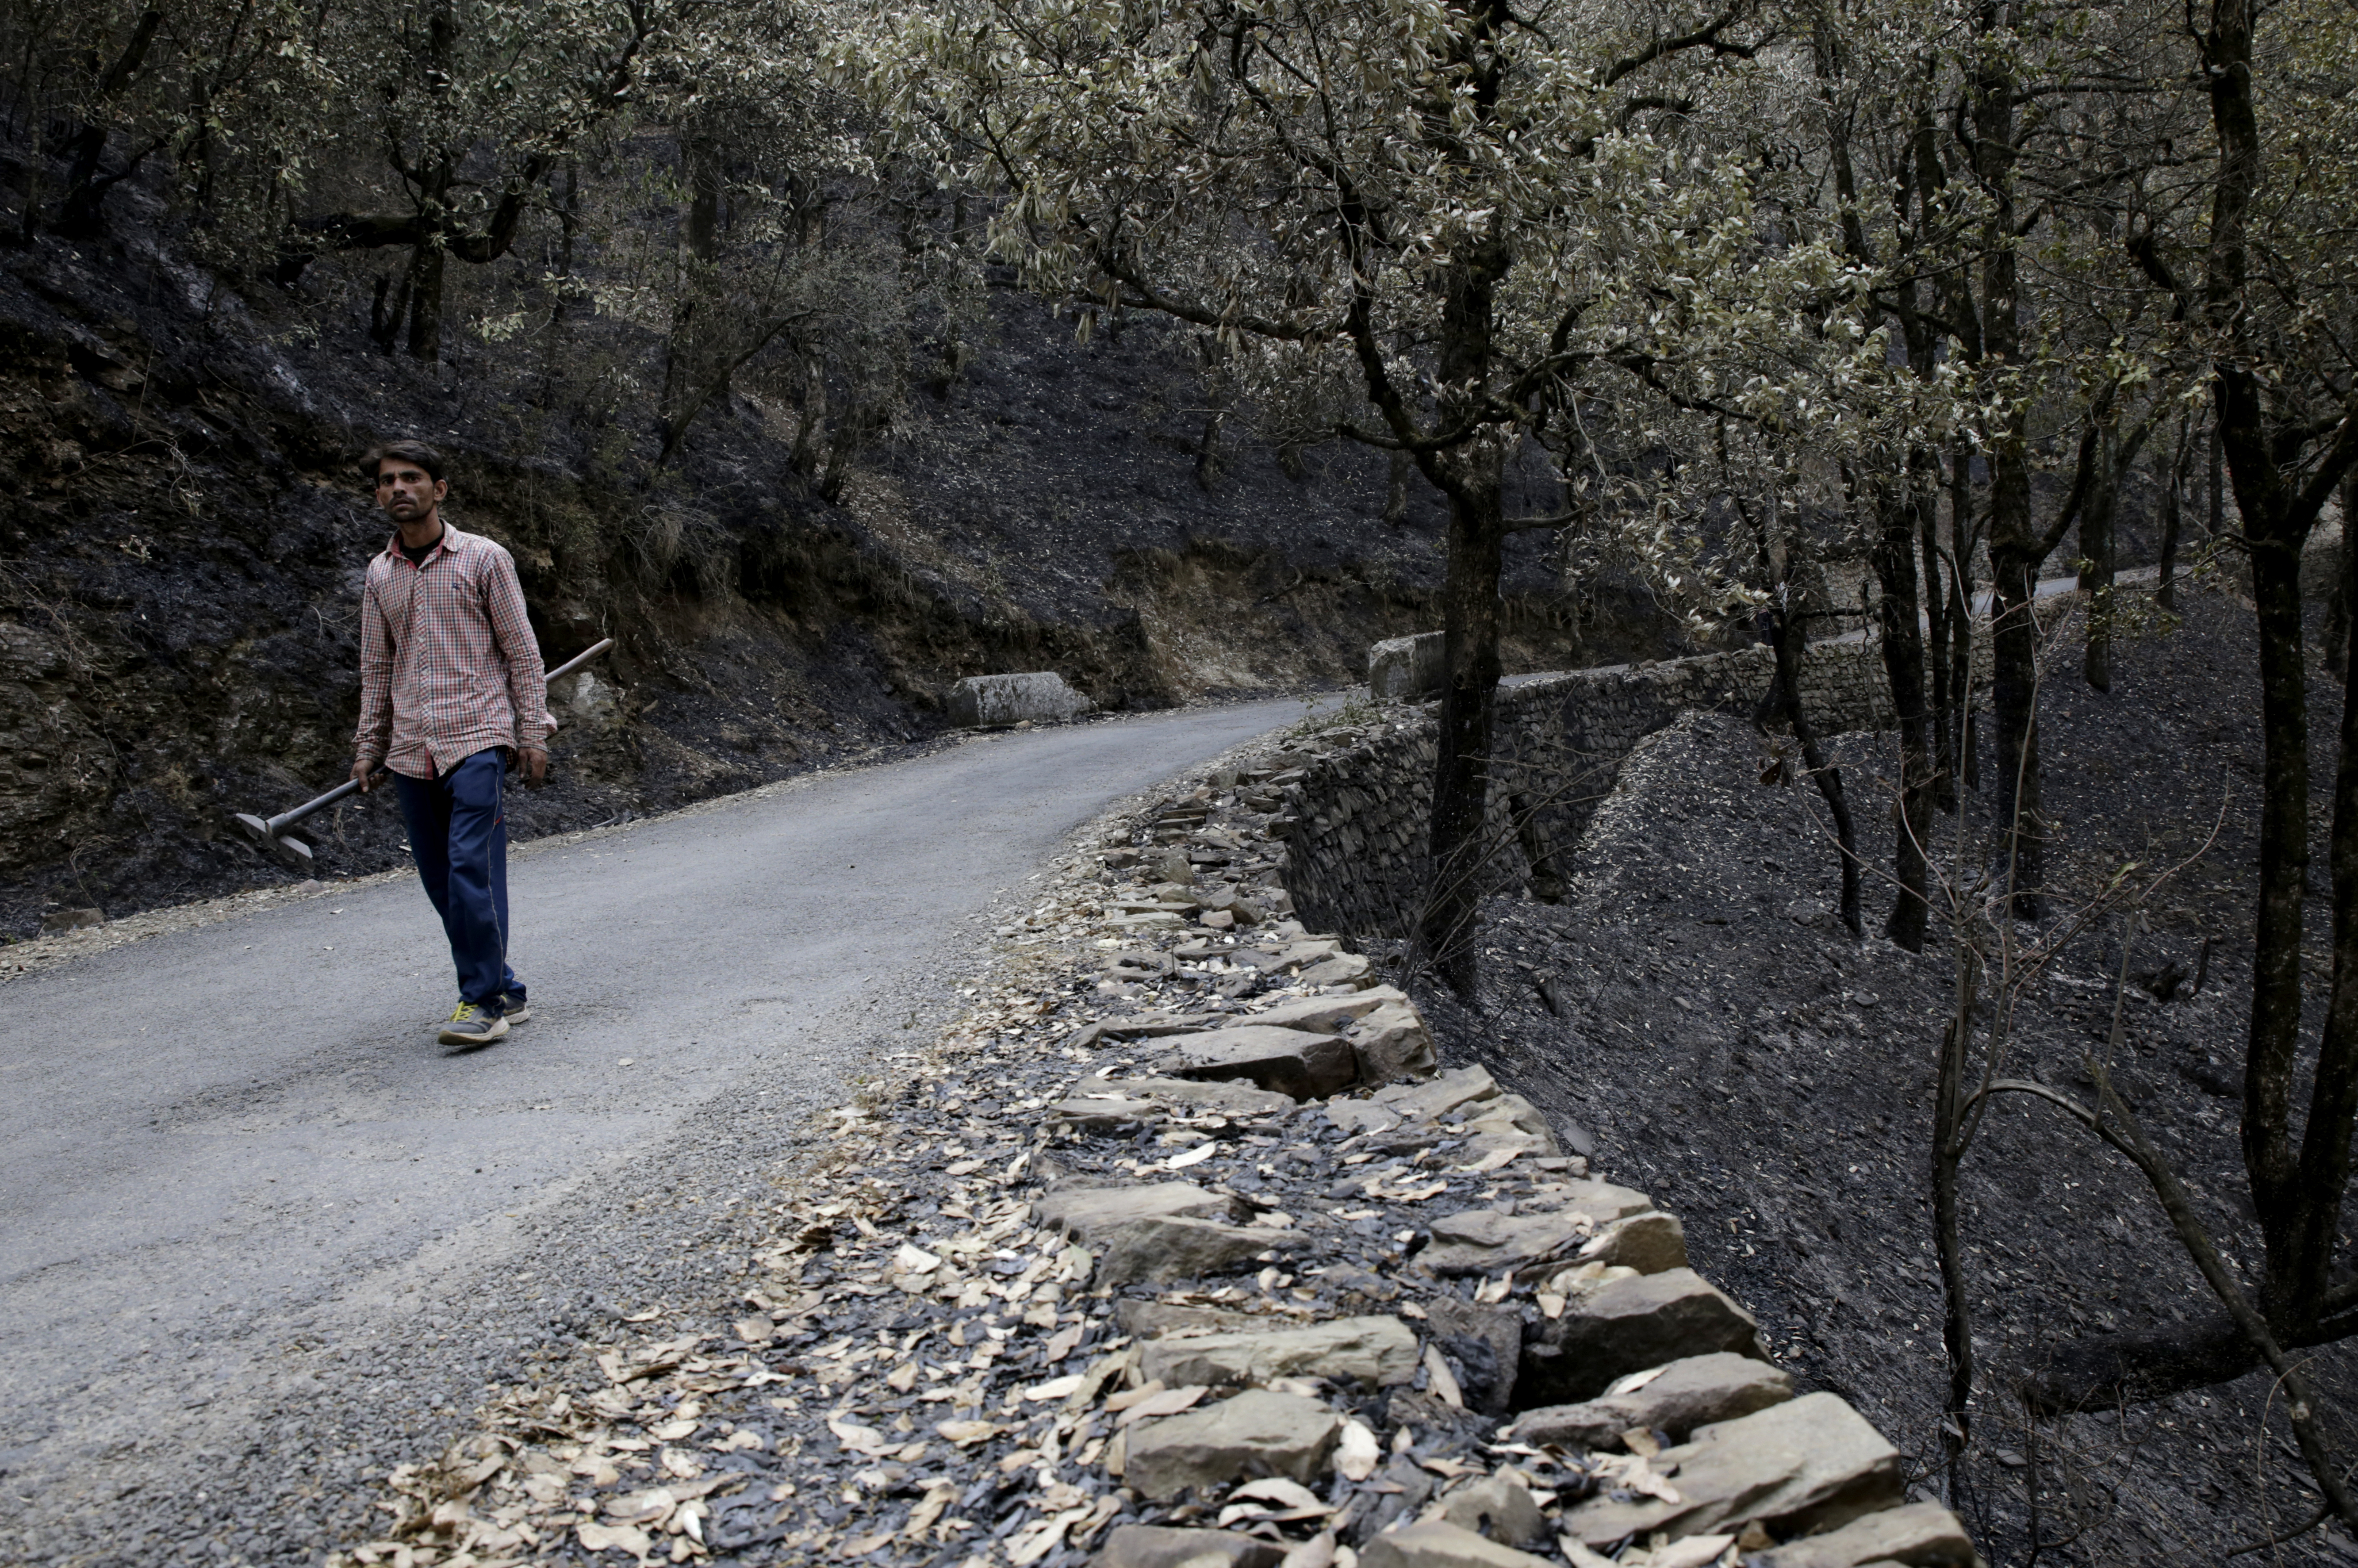 Forest workers have been working tirelessly to put an end to the devastating fires. Kundan, a forest worker, walks through a part of the forest destroyed by fire